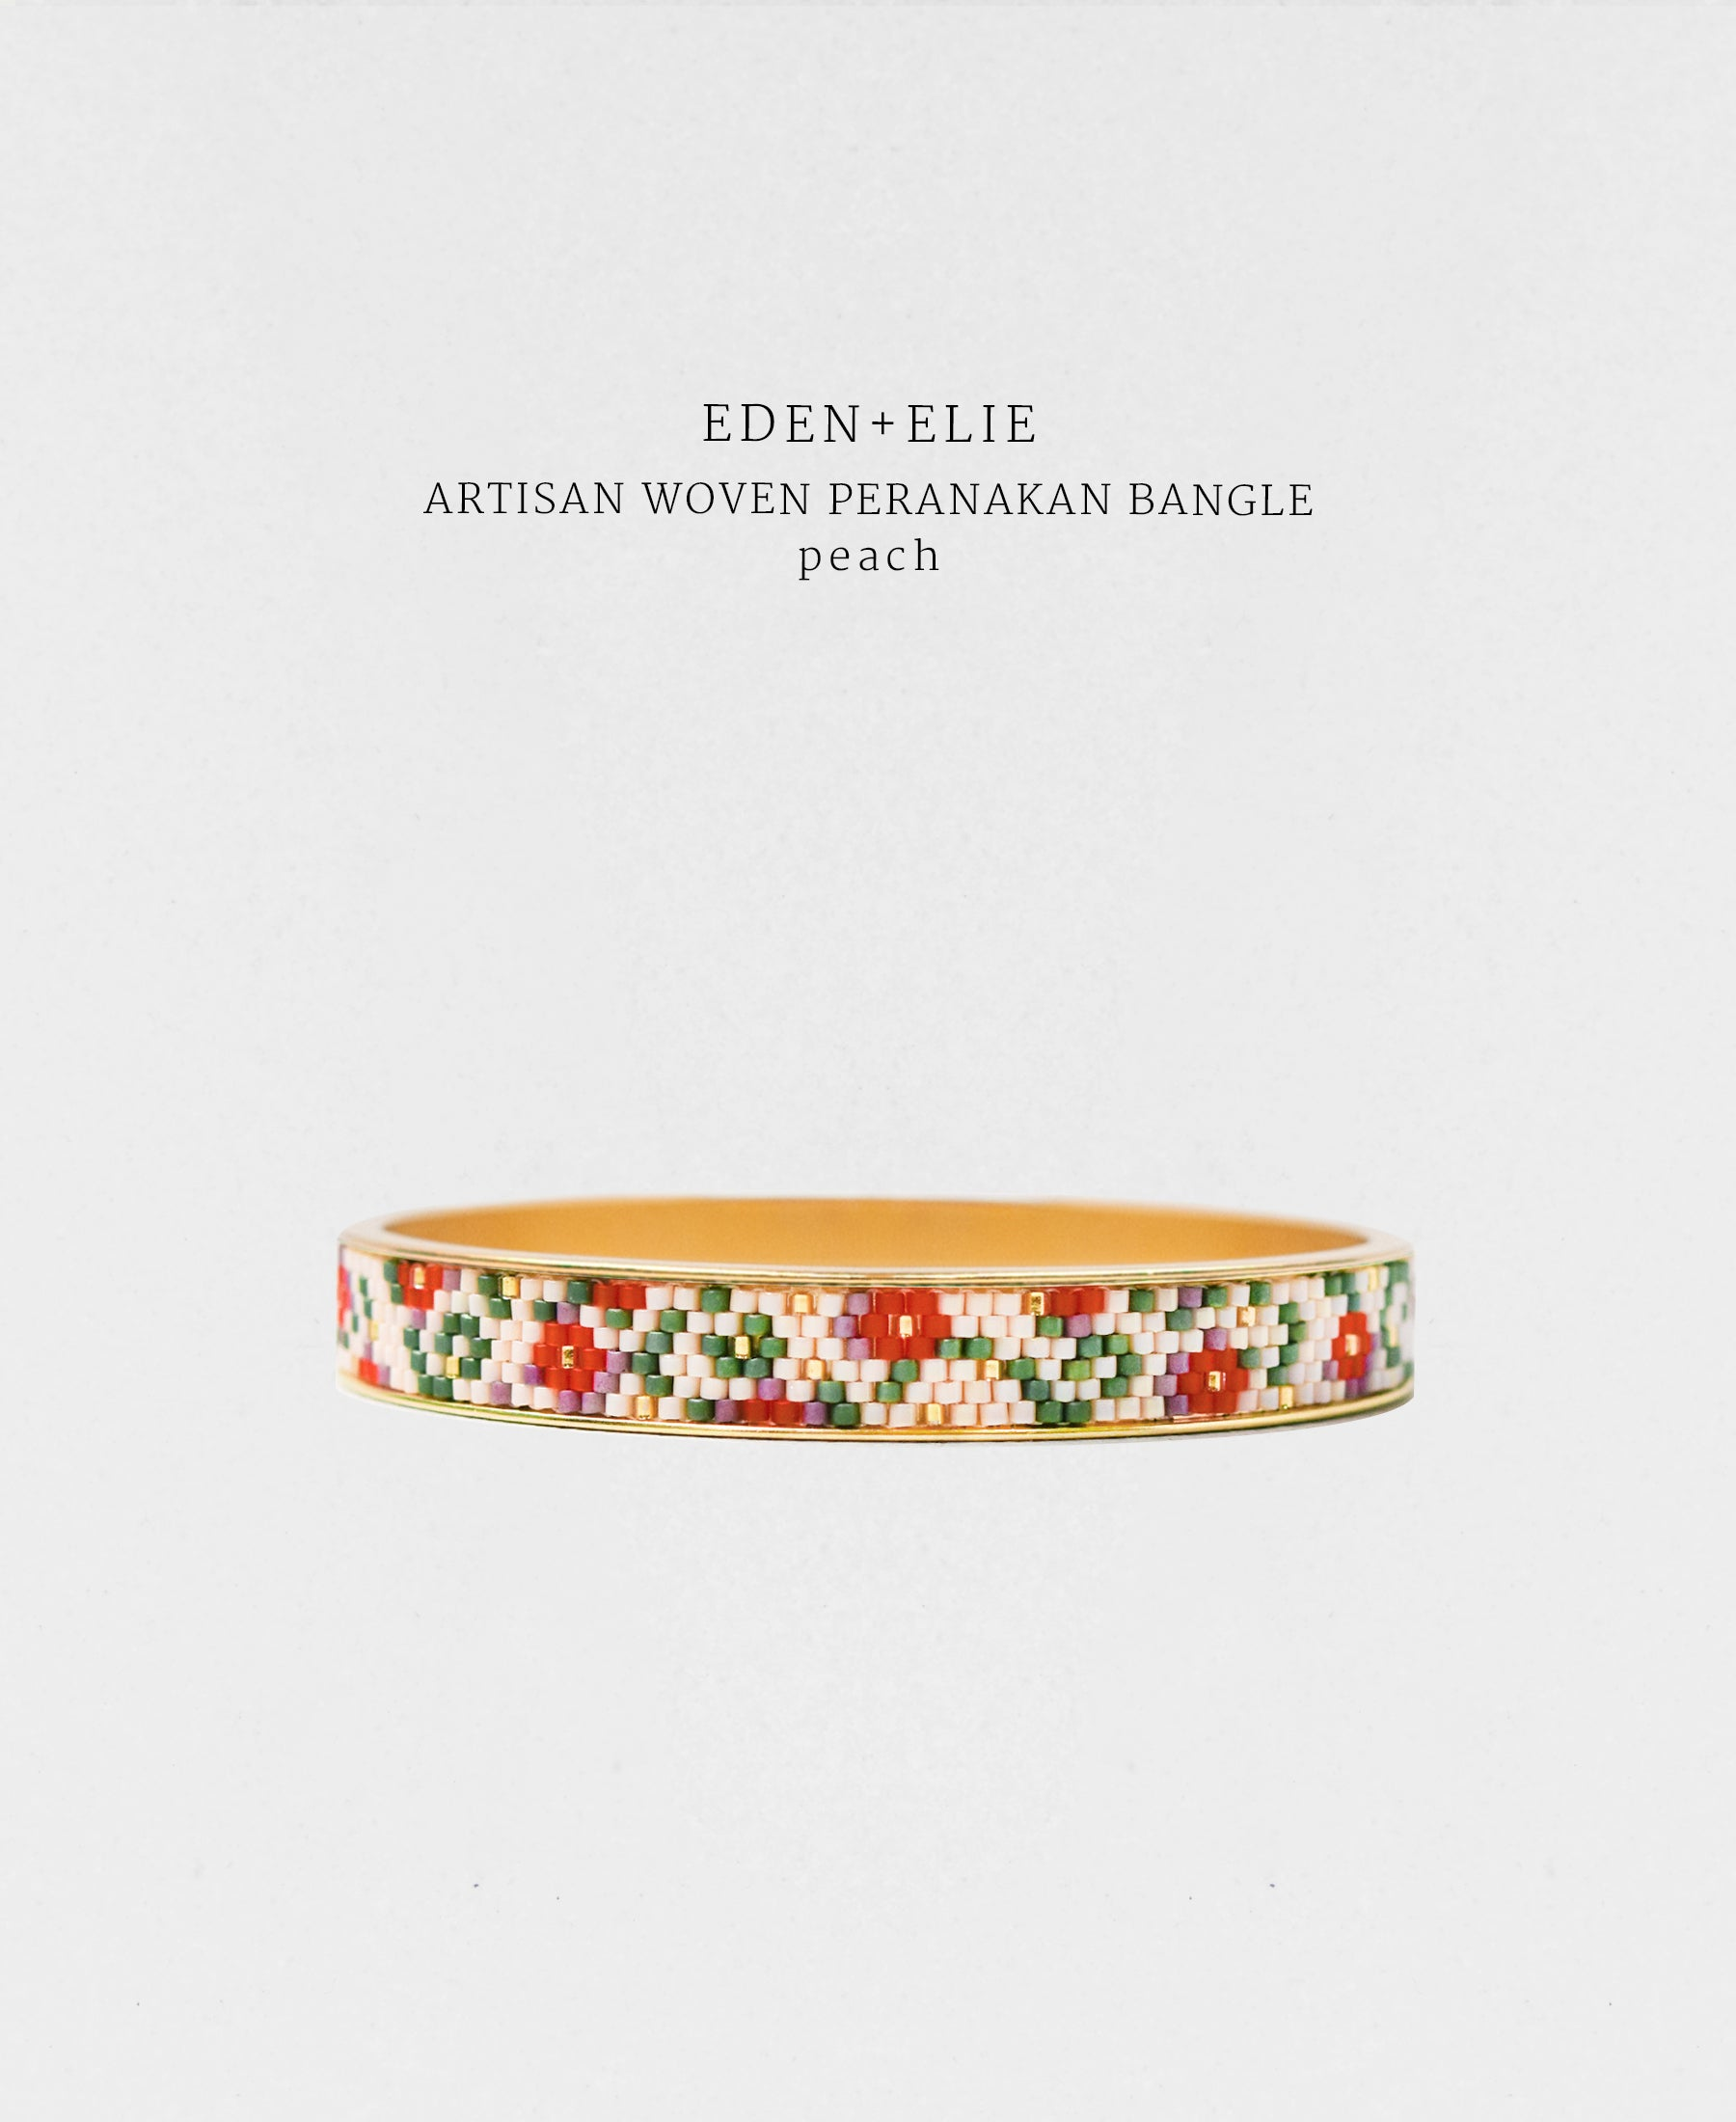 EDEN + ELIE Modern Peranakan gold narrow bangle - peach